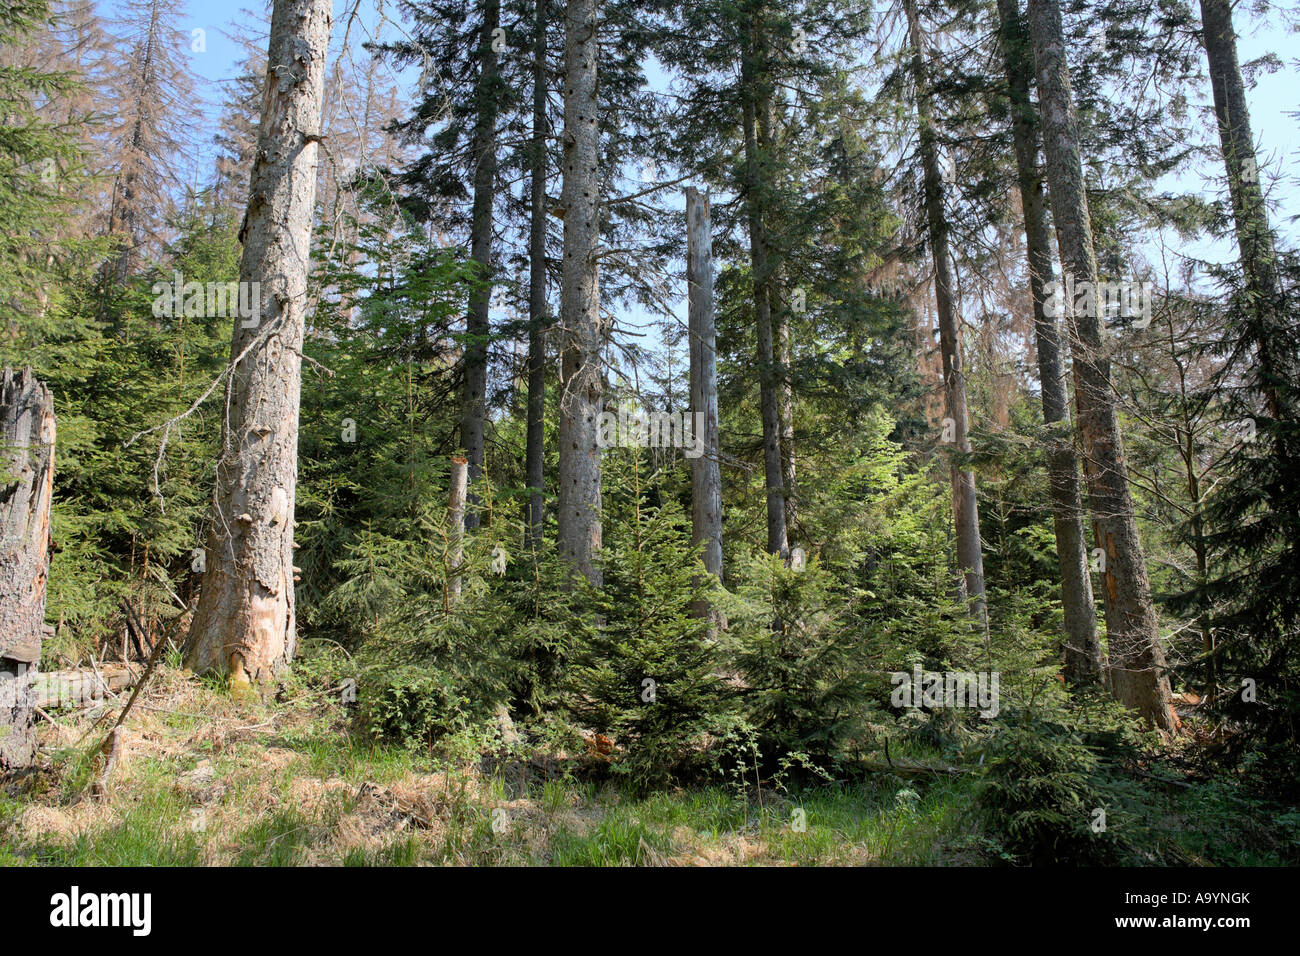 Mixed forest with dead and young spruces, regeneration, Bayerischer Wald National park, Lower Bavaria, Germany - Stock Image